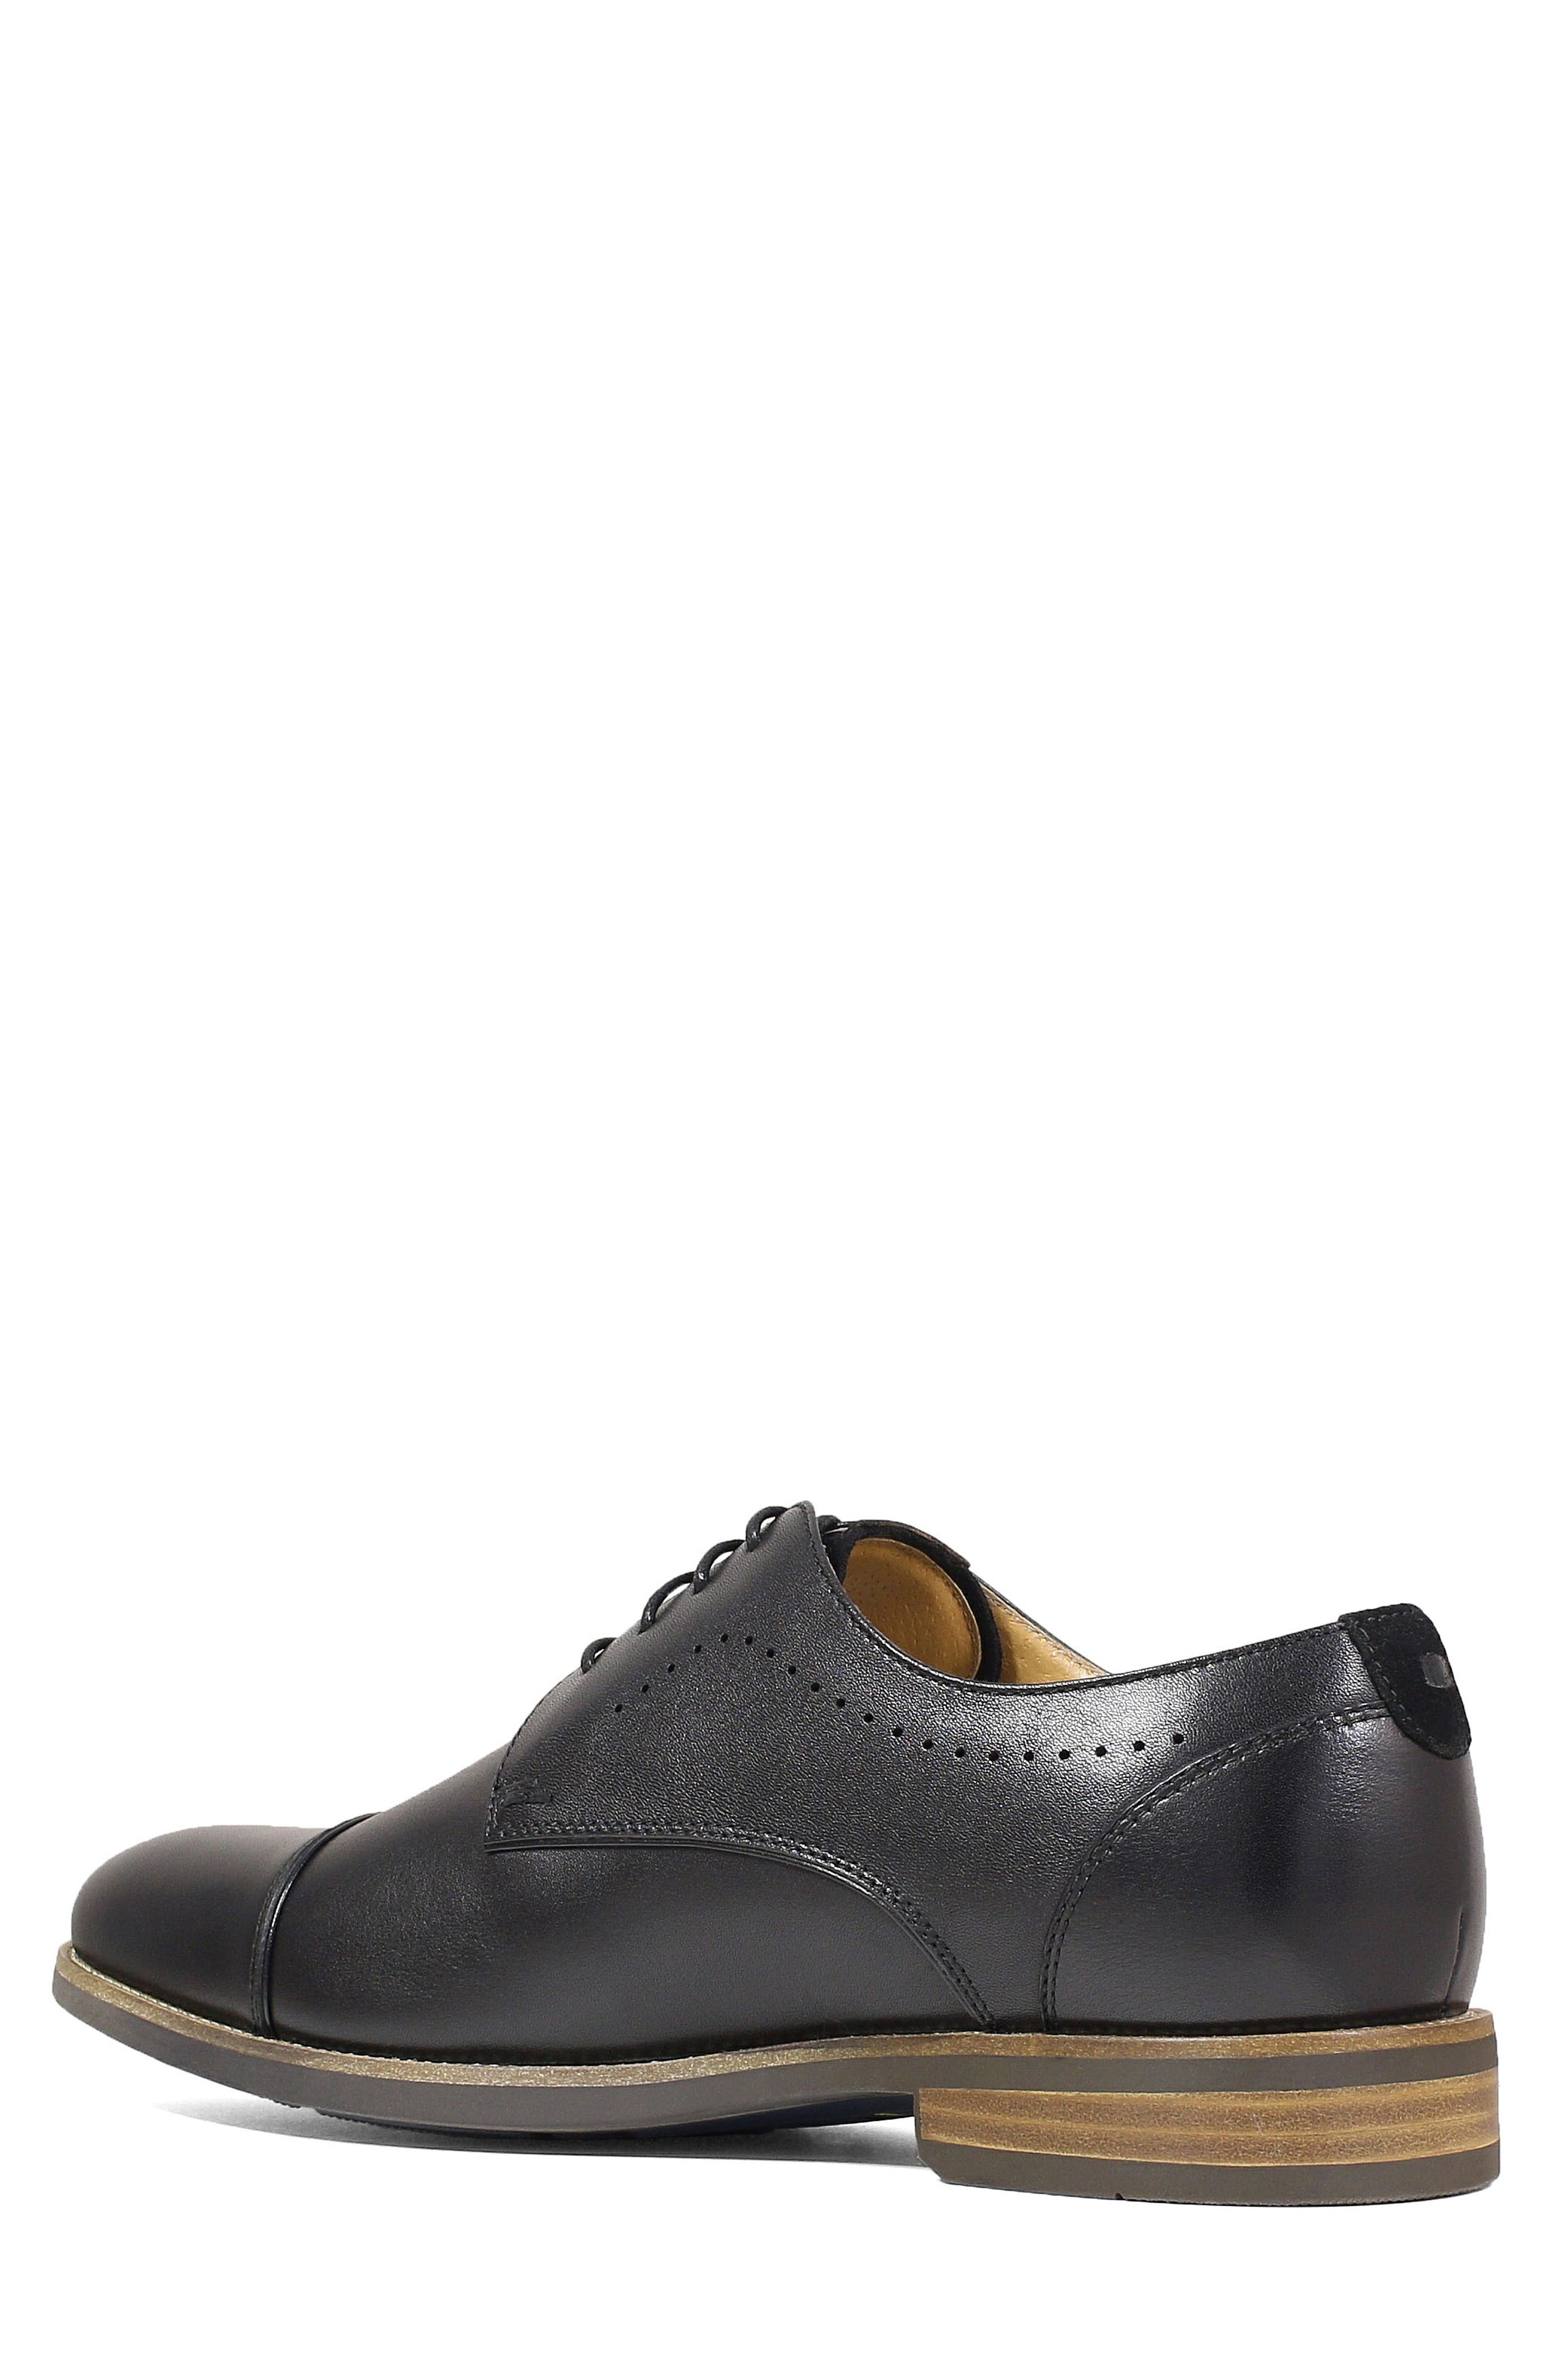 Uptown Cap Toe Derby,                             Alternate thumbnail 2, color,                             BLACK LEATHER